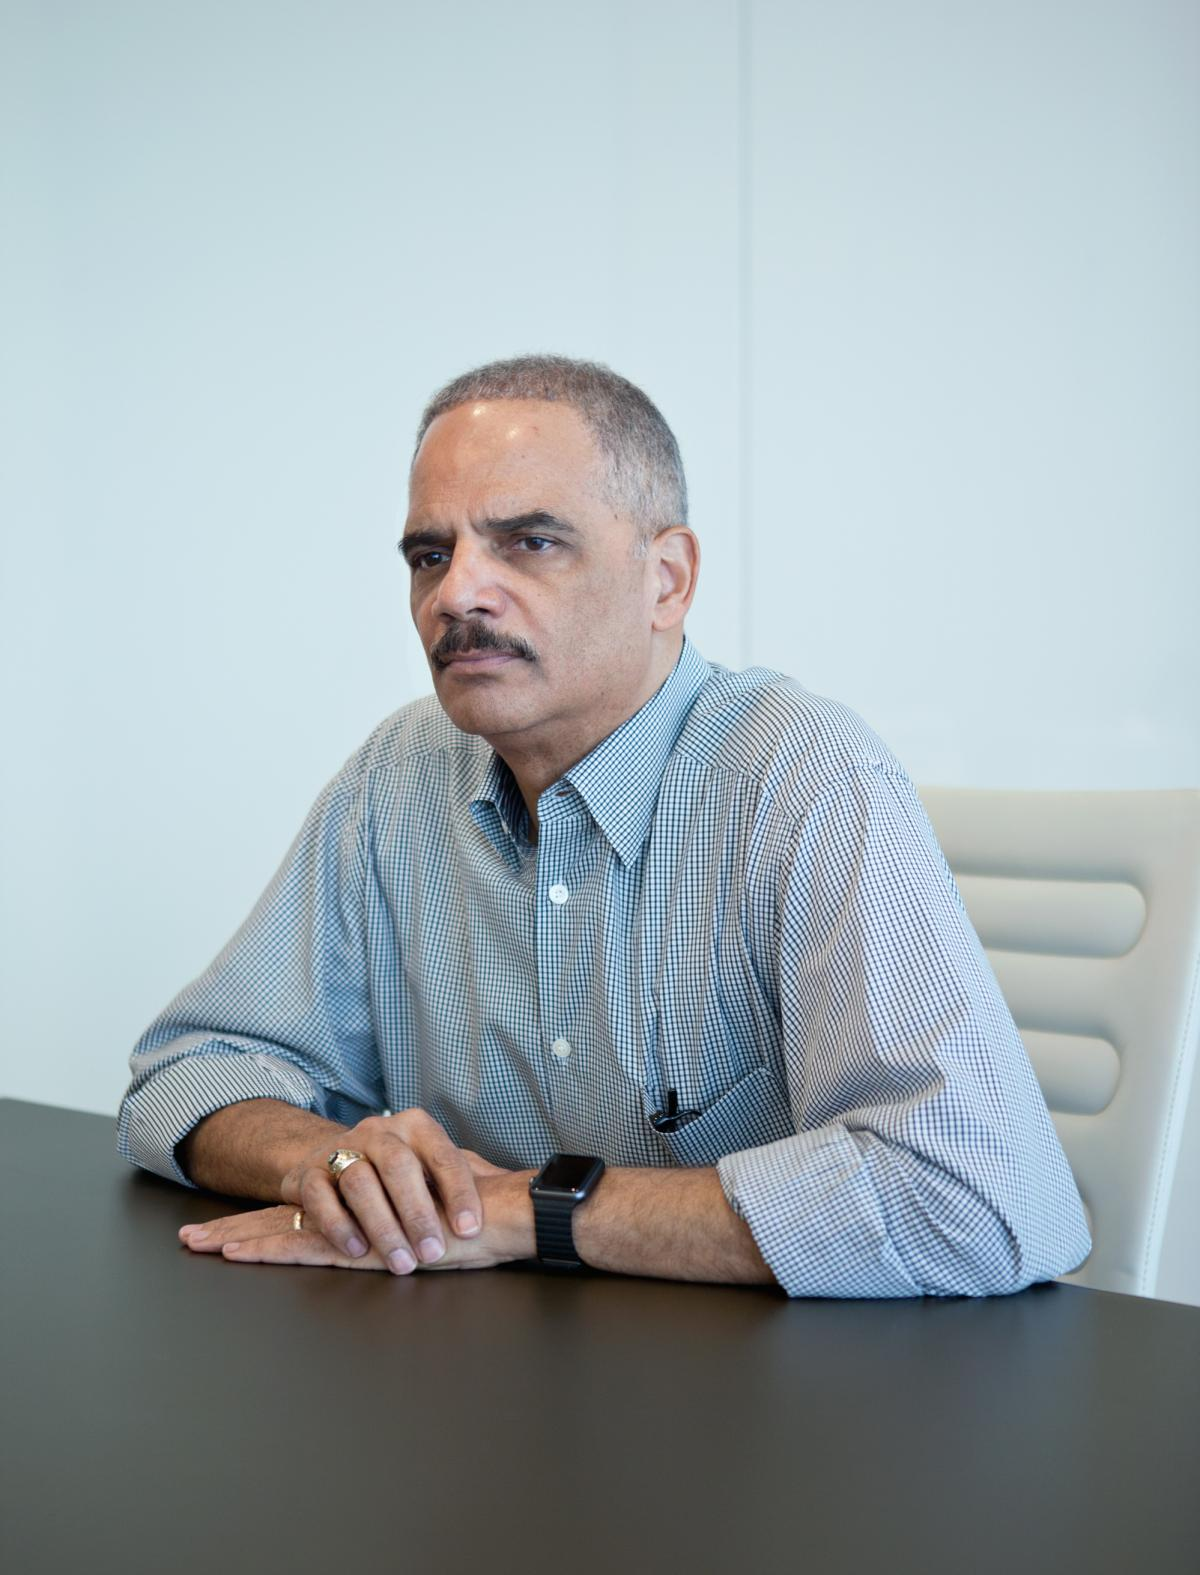 After stepping down as attorney general earlier this year, Holder returned to private practice as a partner at the law firm Covington & Burling.